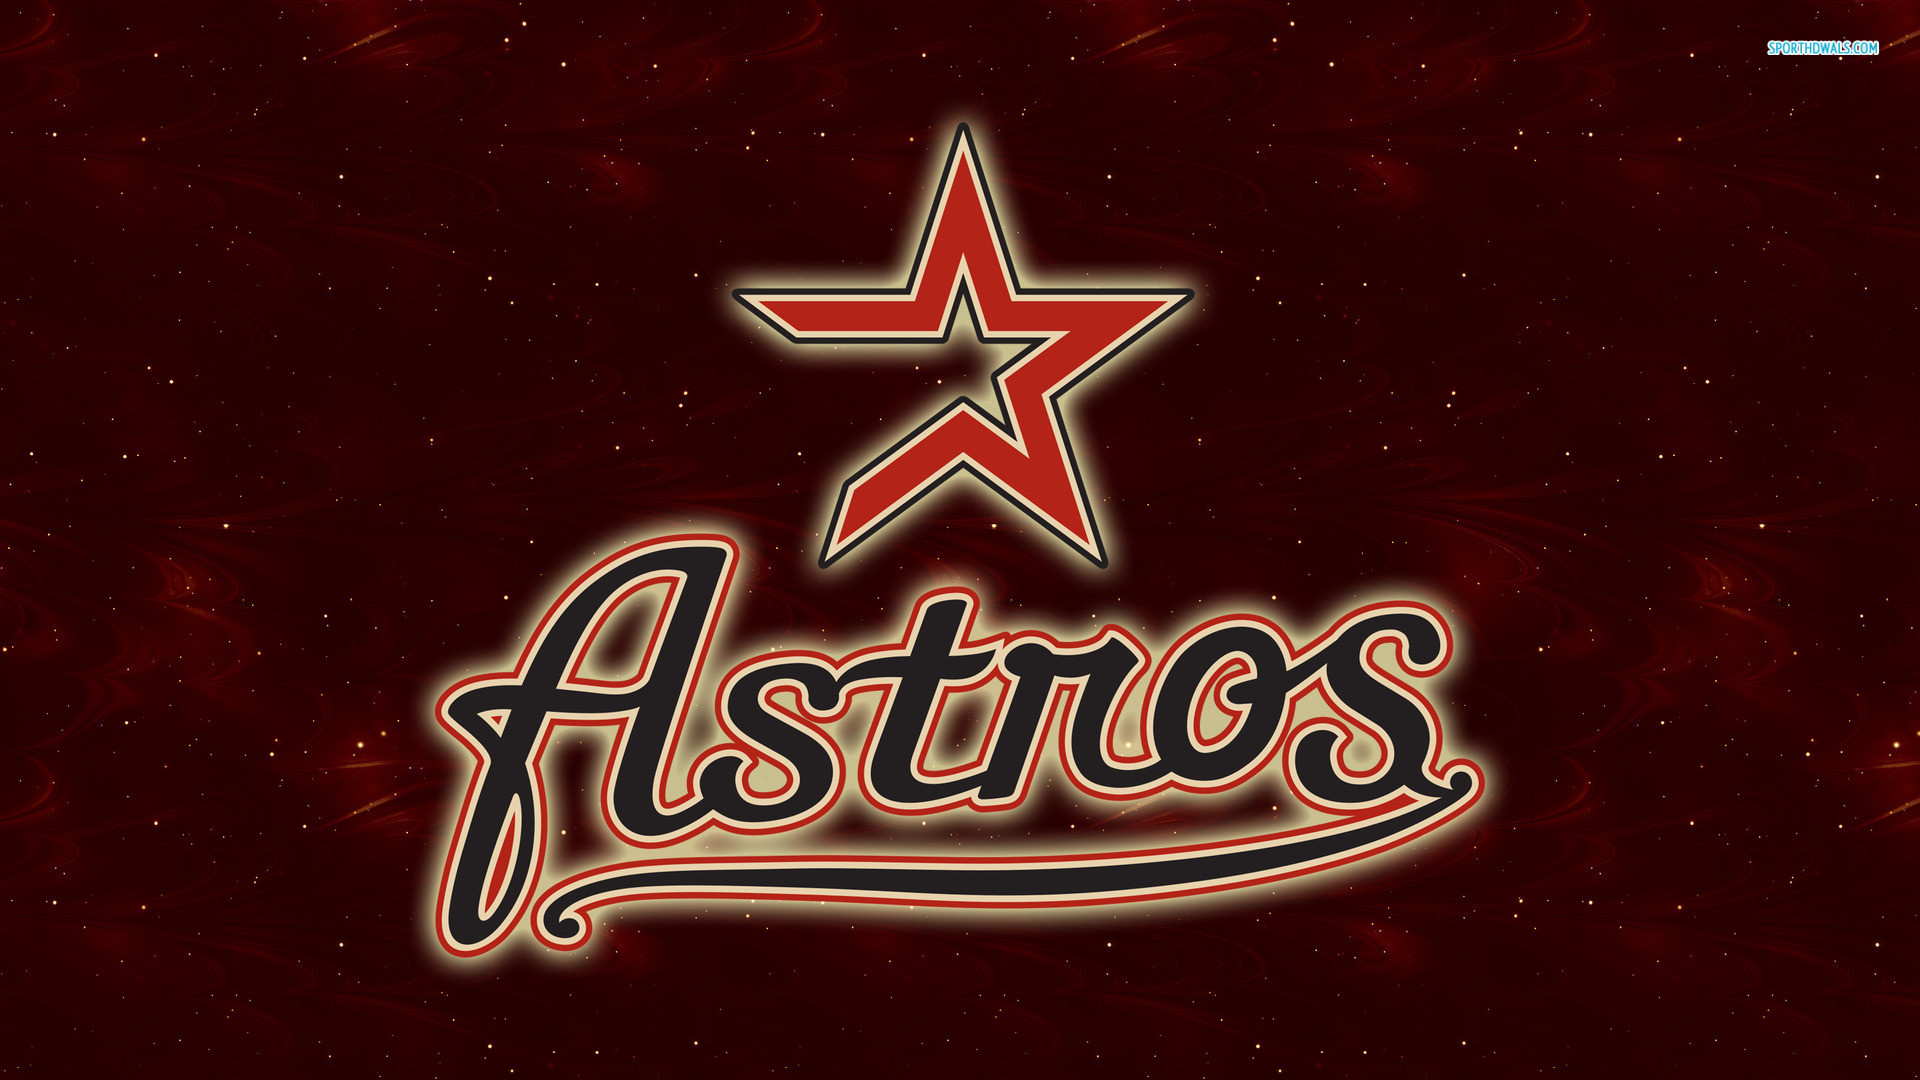 1920x1080 HOUSTON ASTROS mlb baseball (16) wallpaper |  | 232043 |  WallpaperUP